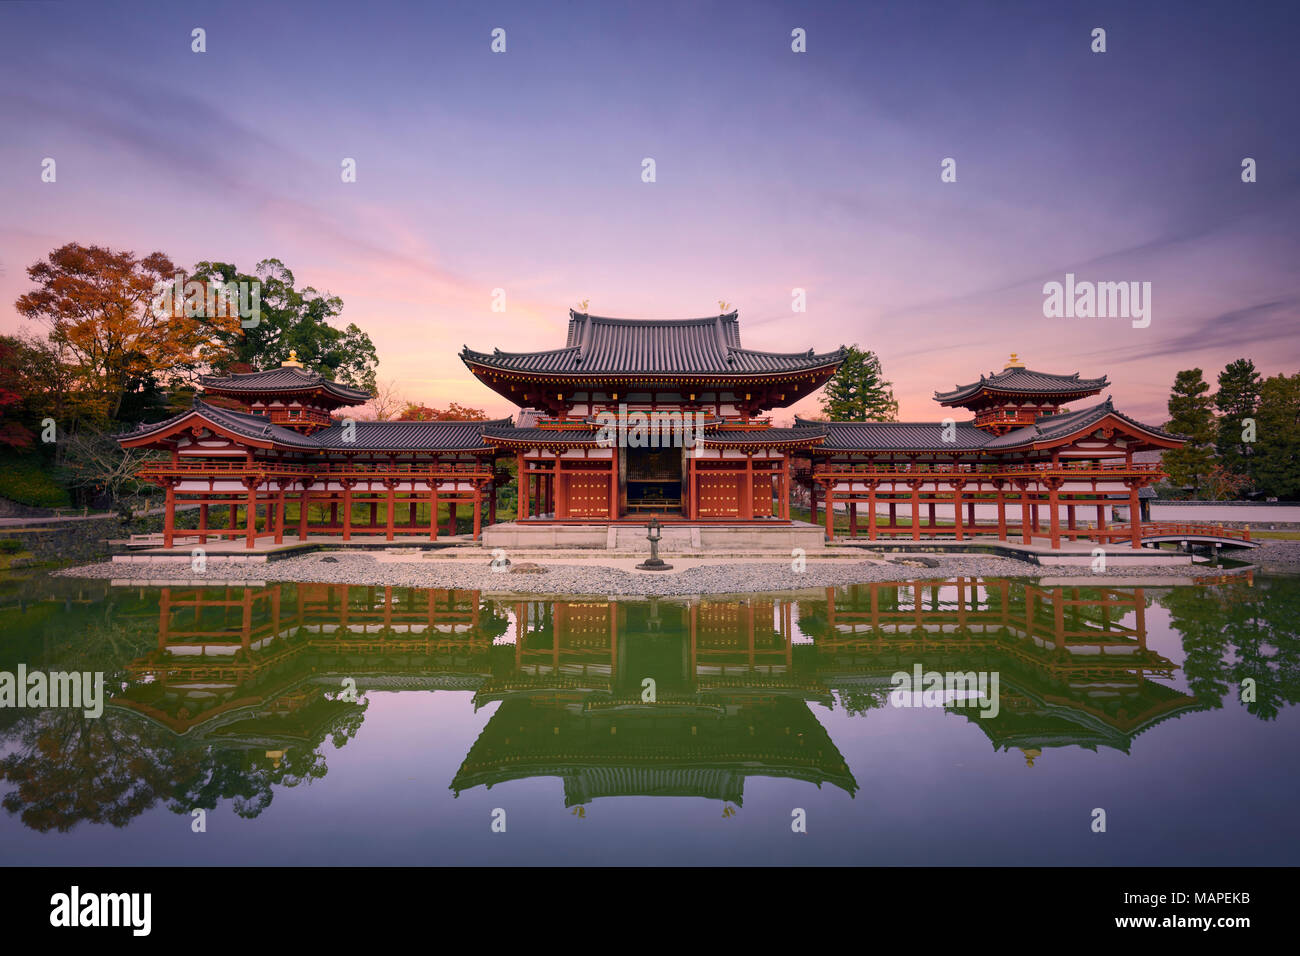 Beautiful tranquil sunset scenery of the Phoenix or Amida Hall of Byodoin, Byodo-in Japanese Buddhist temple reflecting in the clear calm water of Jod - Stock Image